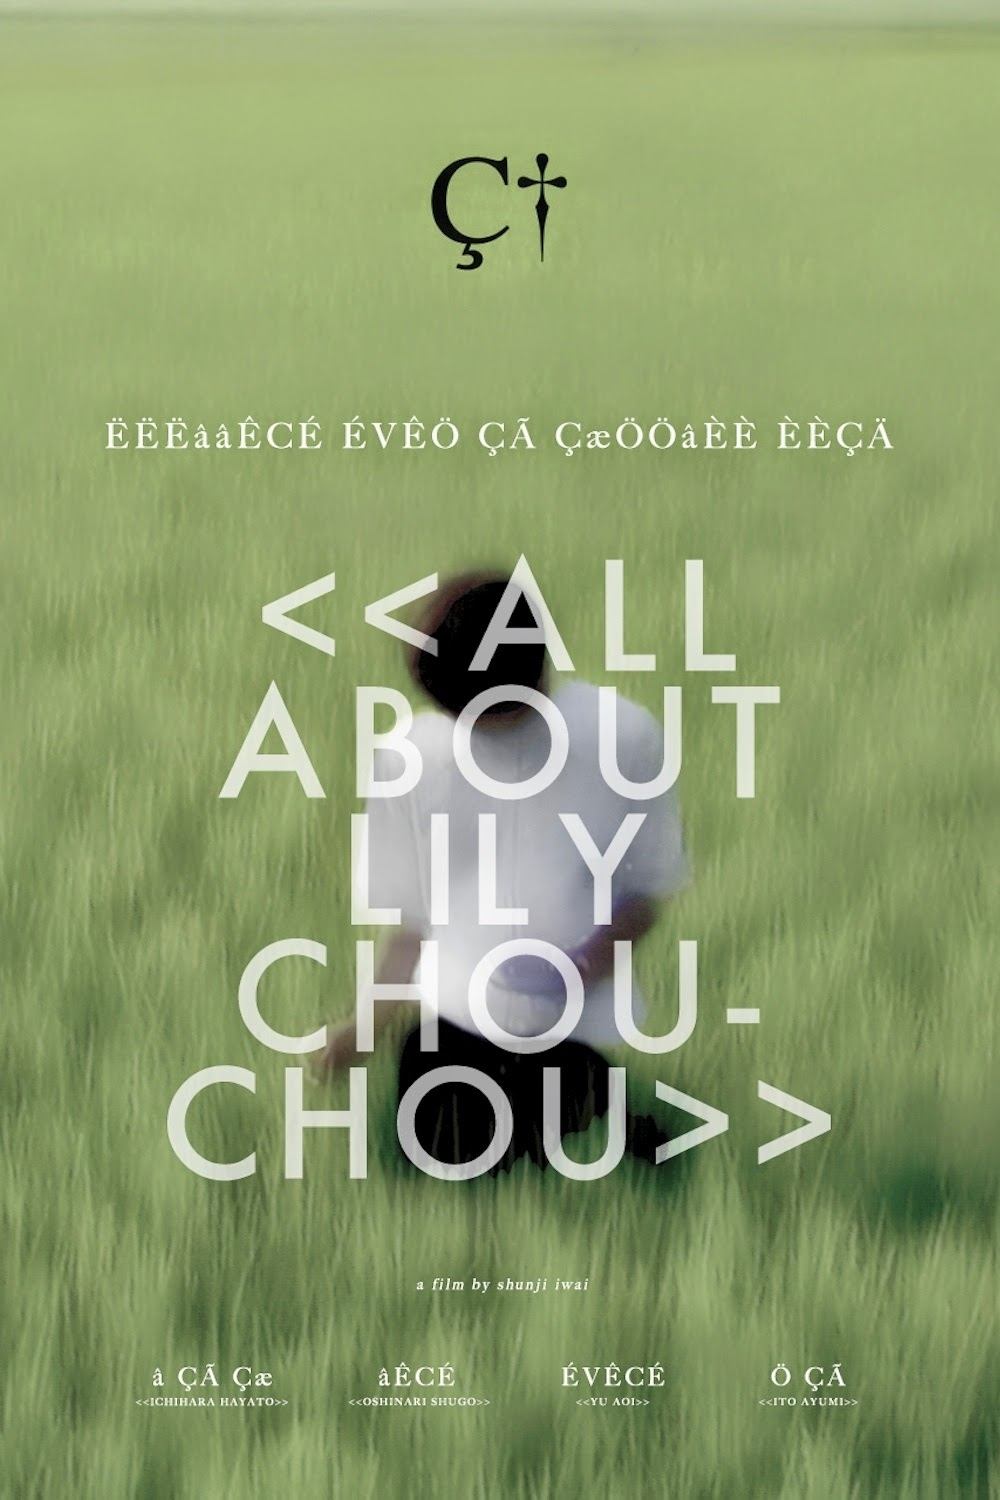 All About Lily Chou-Chou 2001